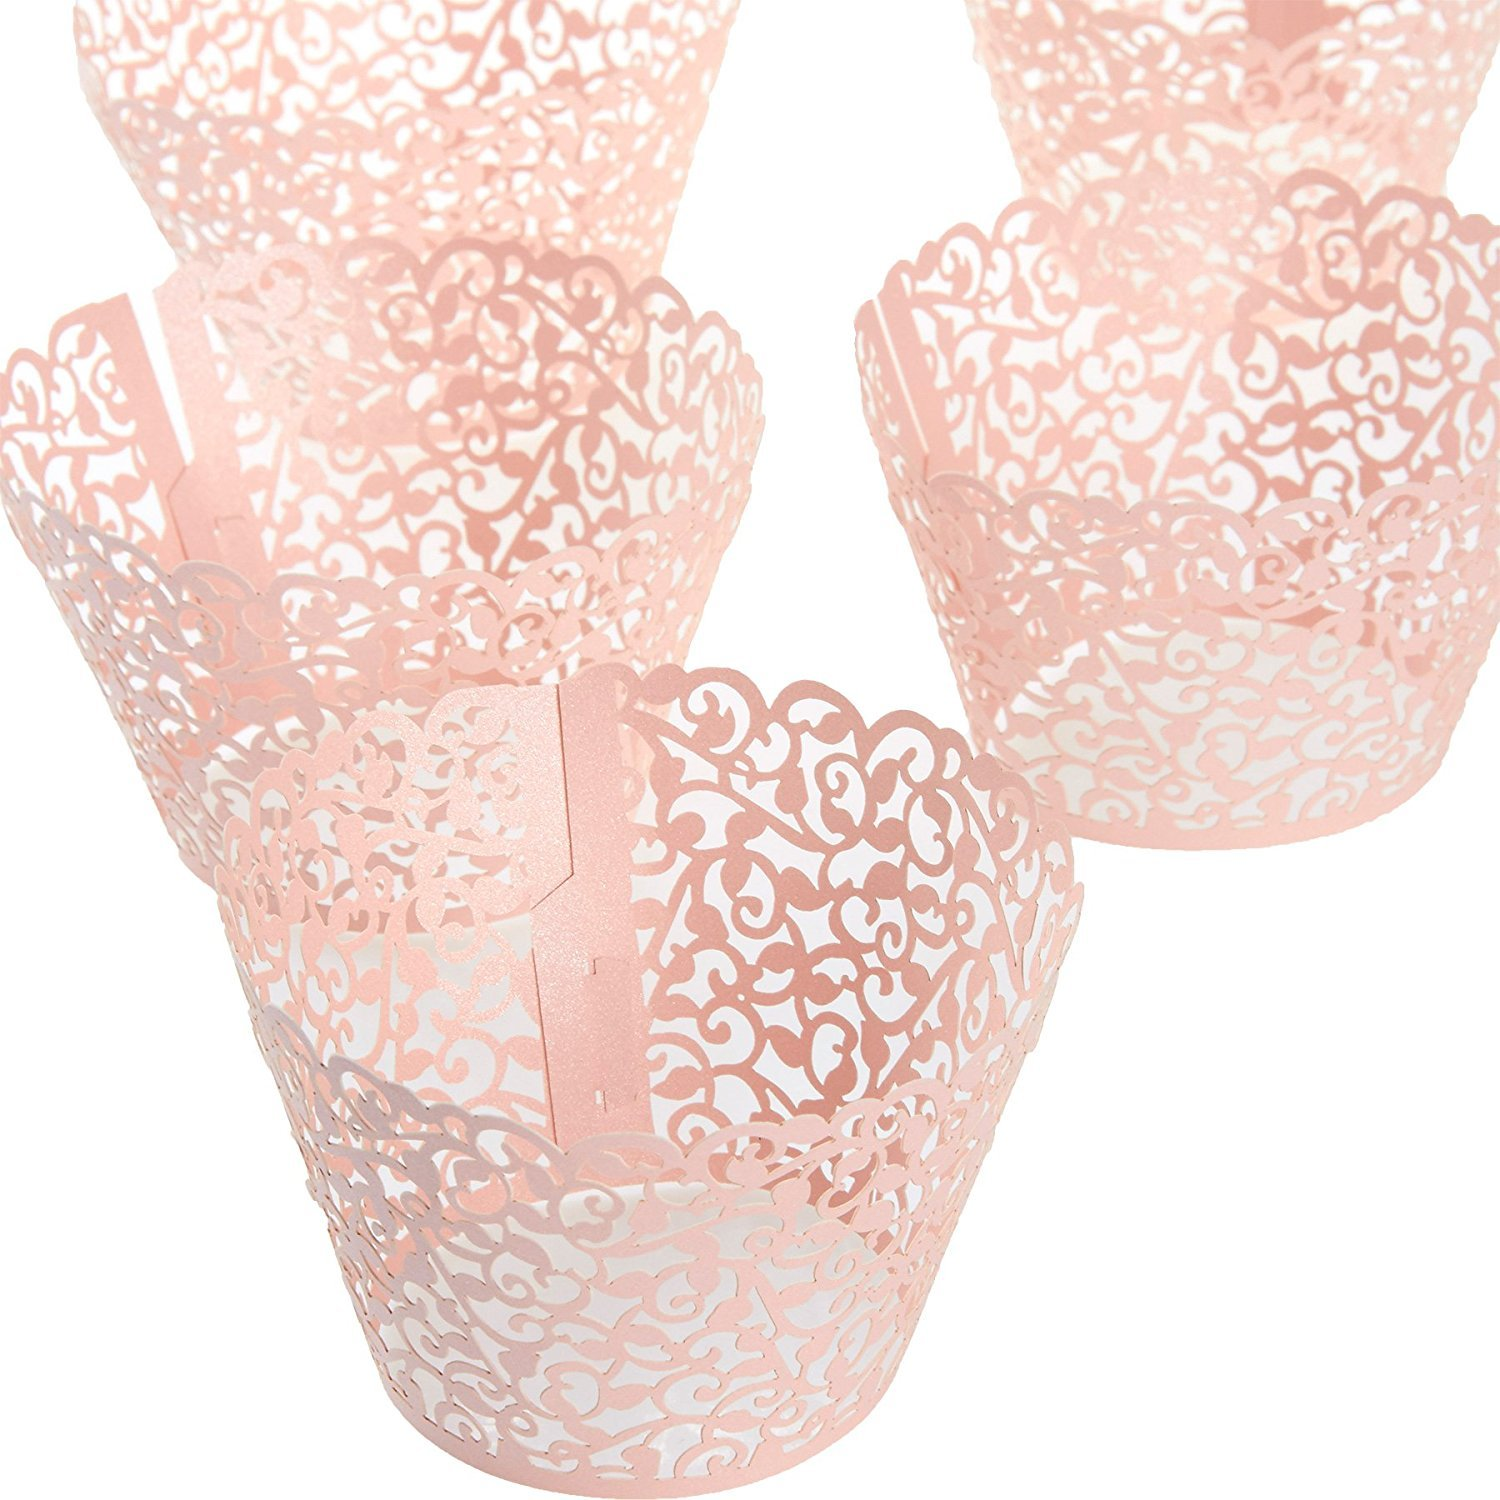 100 Piece Lace Cupcake Liners - Decorative Laser Cut Wrappers, Muffin Cups - Elegant Vine Hollow Pattern Design for Weddings, Birthday Party, Baby Showers, Christmas and Special Occasions - Pink by Juvale (Image #9)